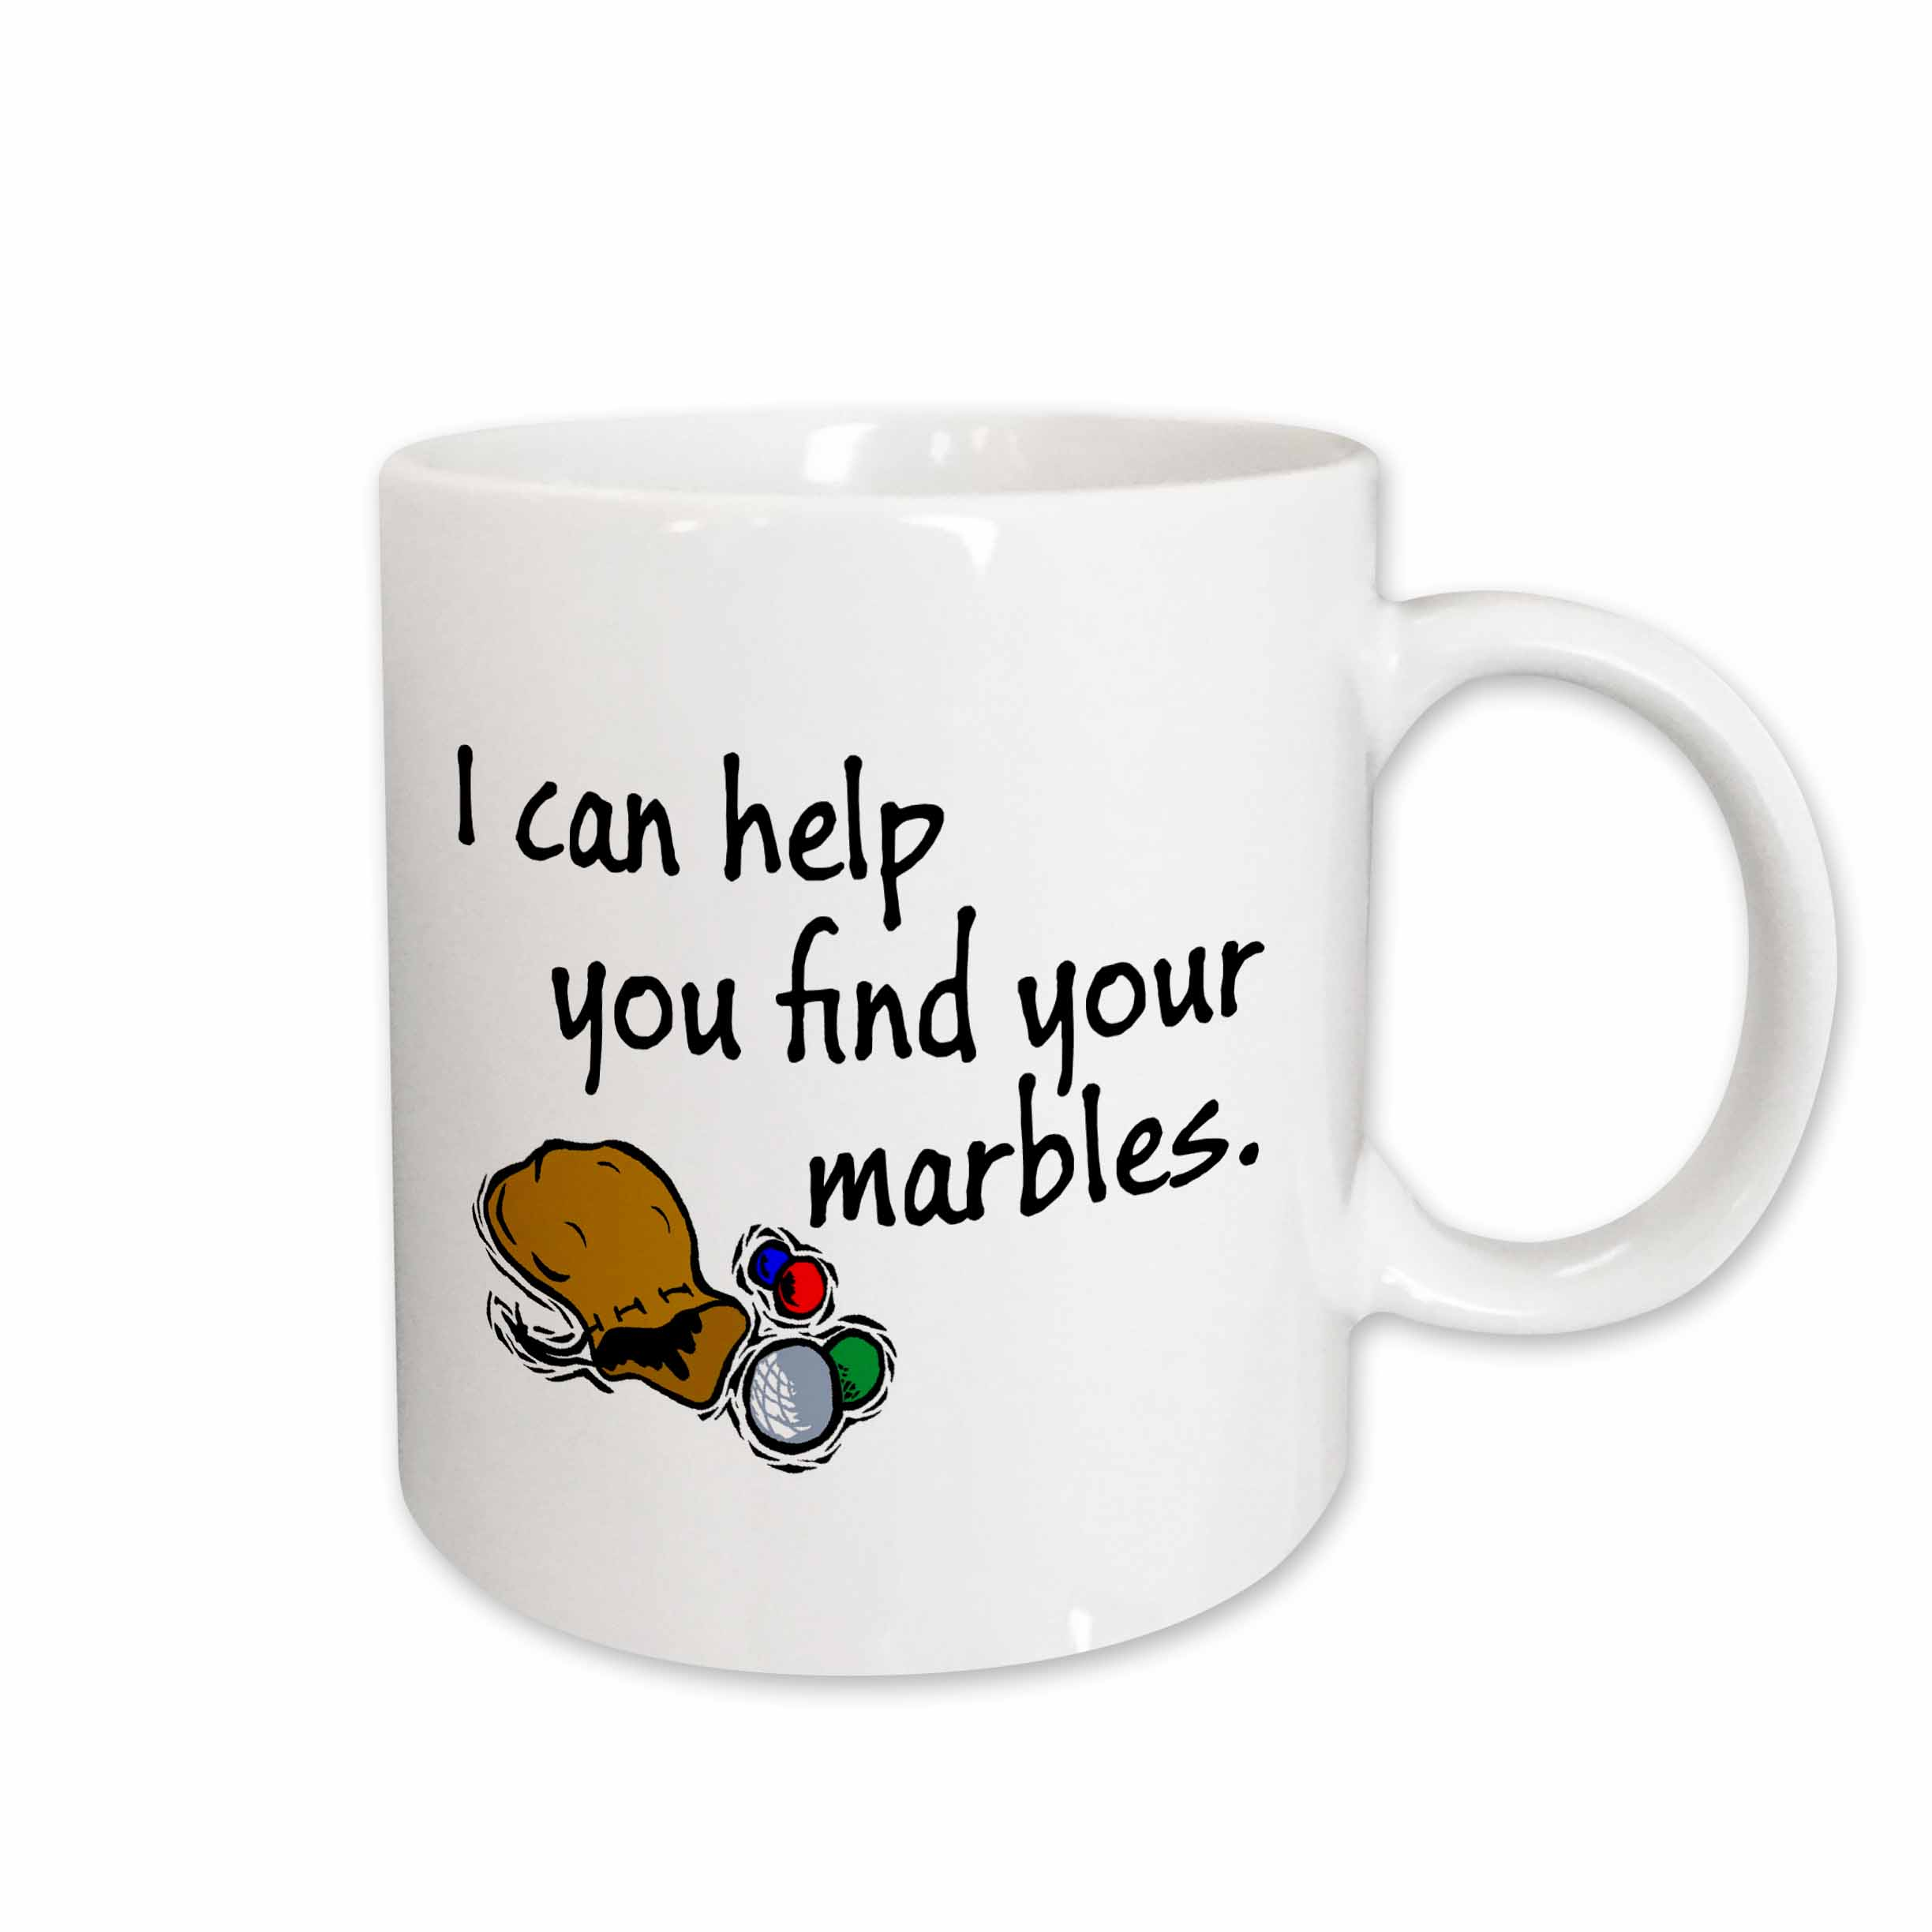 3drose I Can Help You Find Your Marbles Ceramic Mug 11